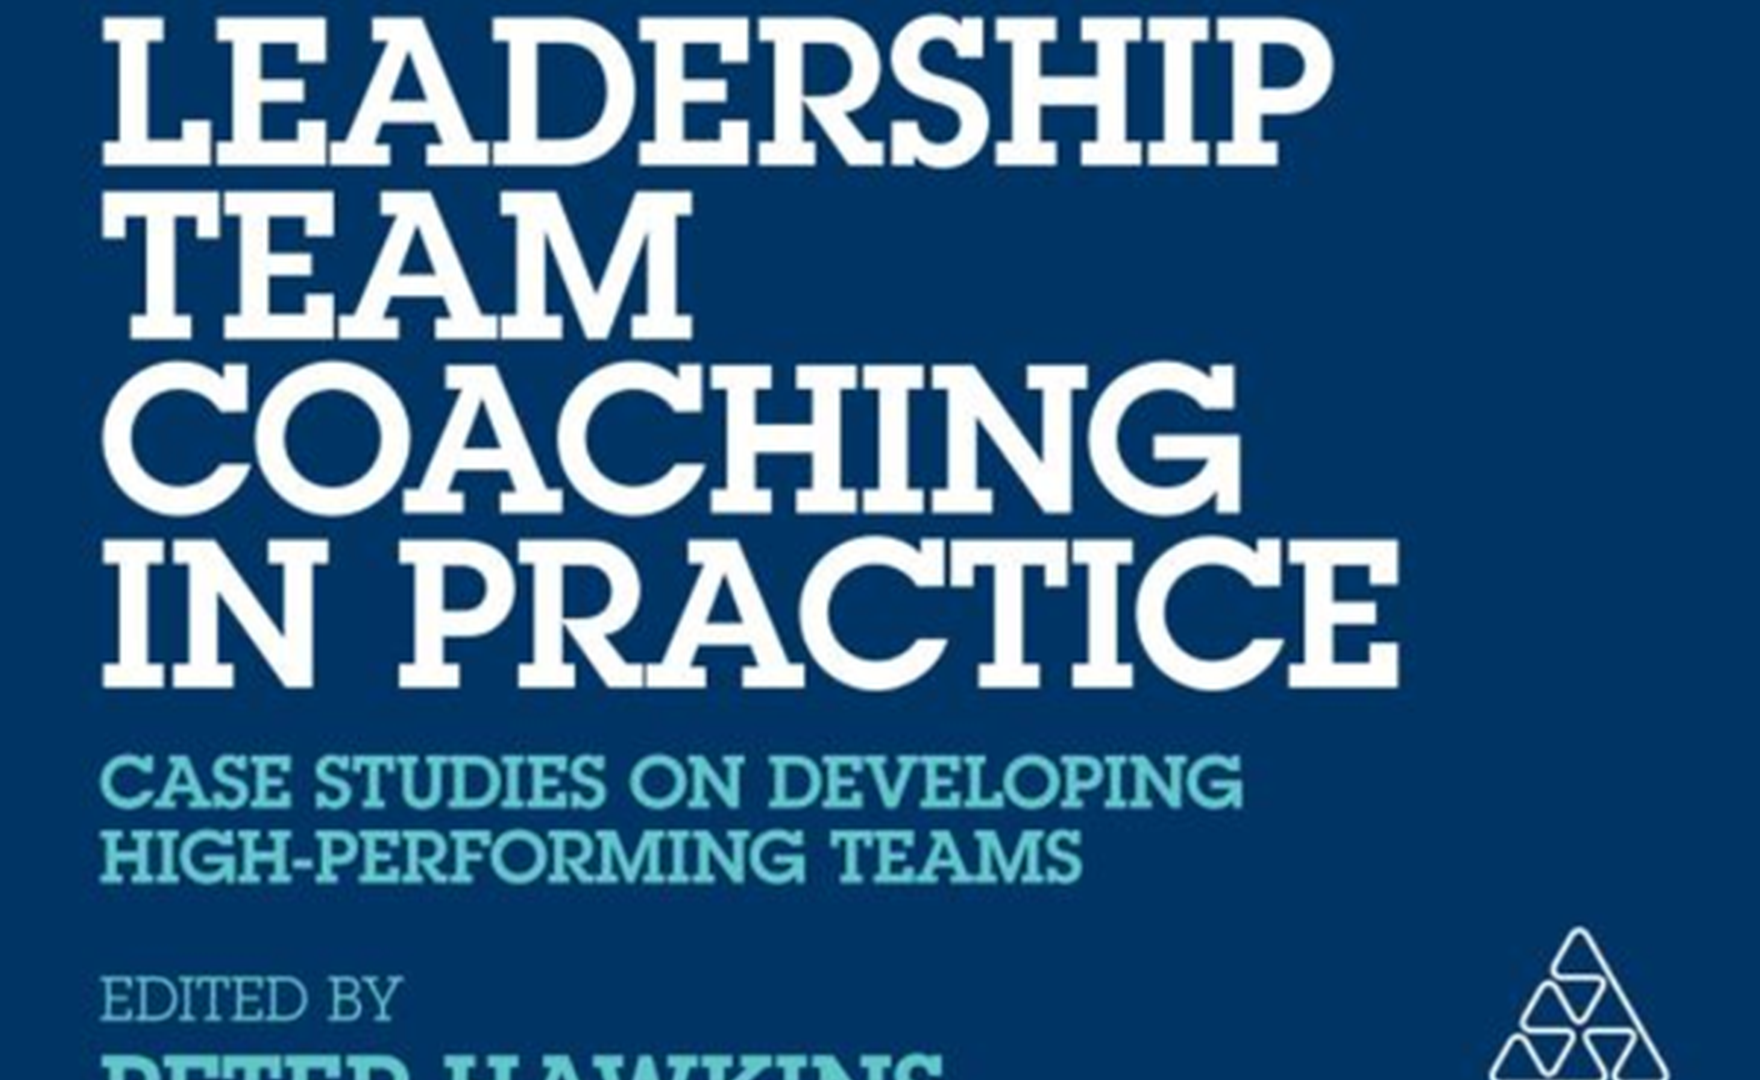 Book Review: Leadership Team Coaching in Practice